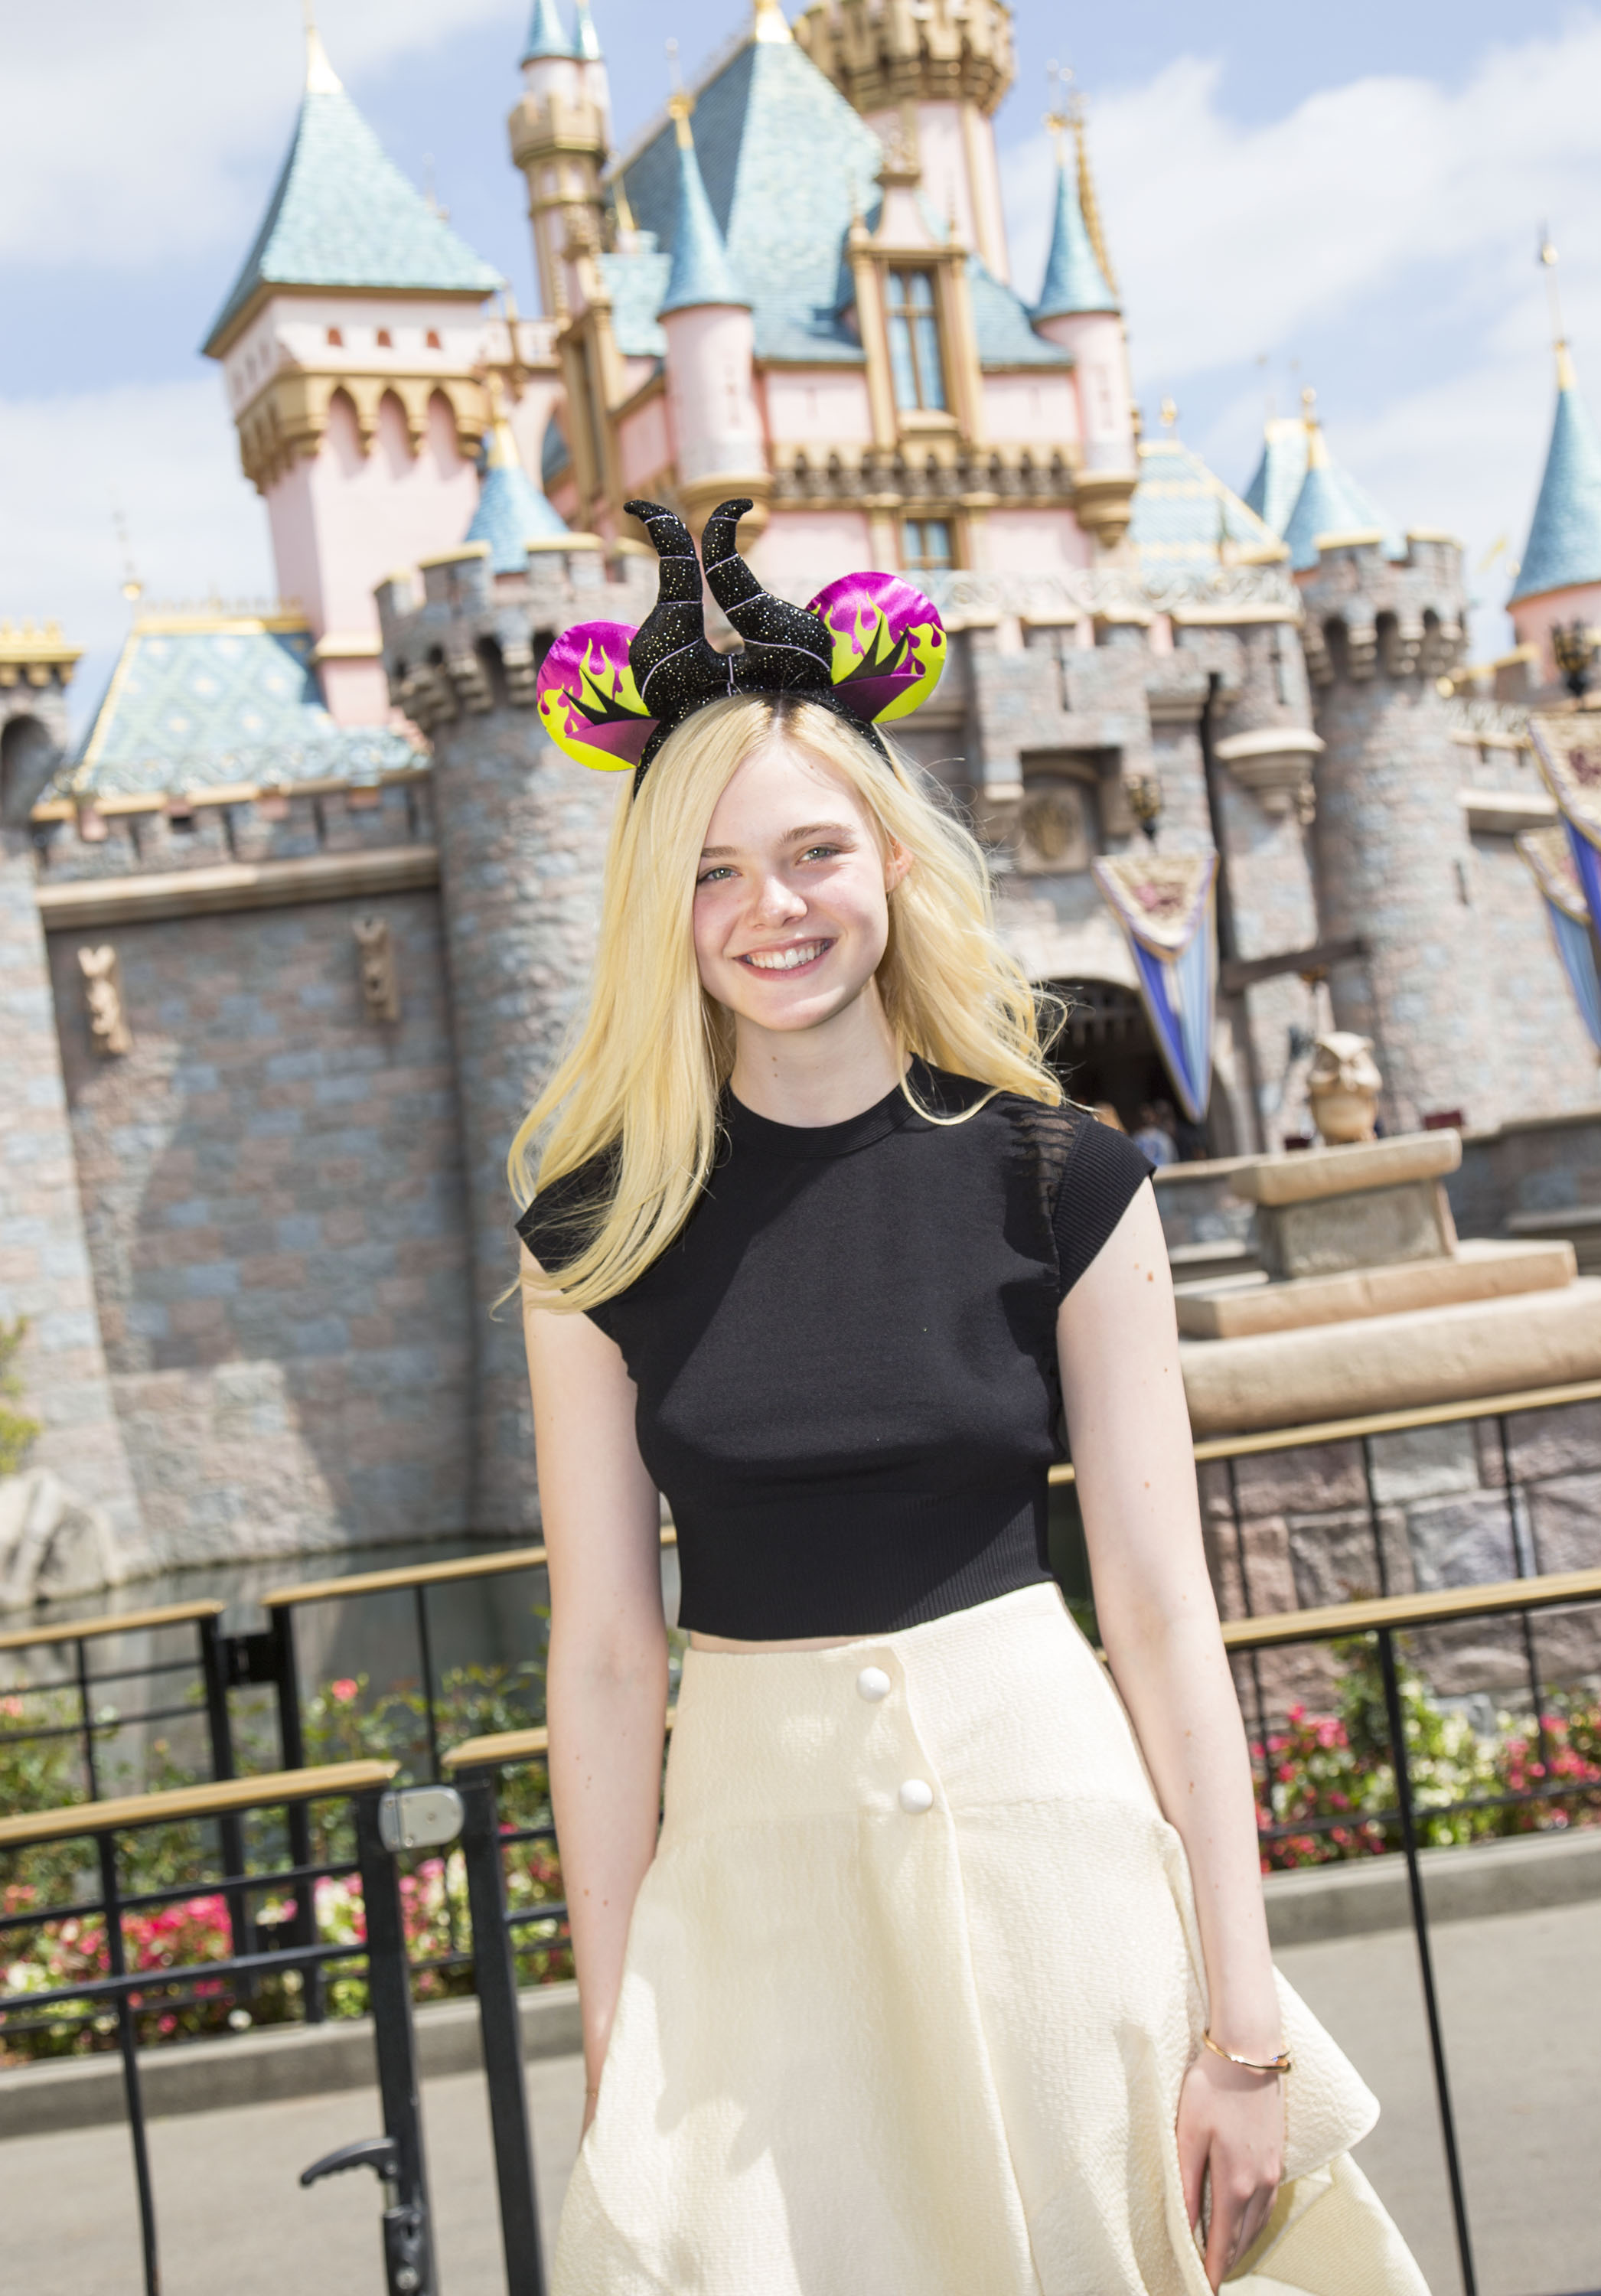 Maleficent-Elle Fanning-PROMO PHOTO-17ABRIL2014-04